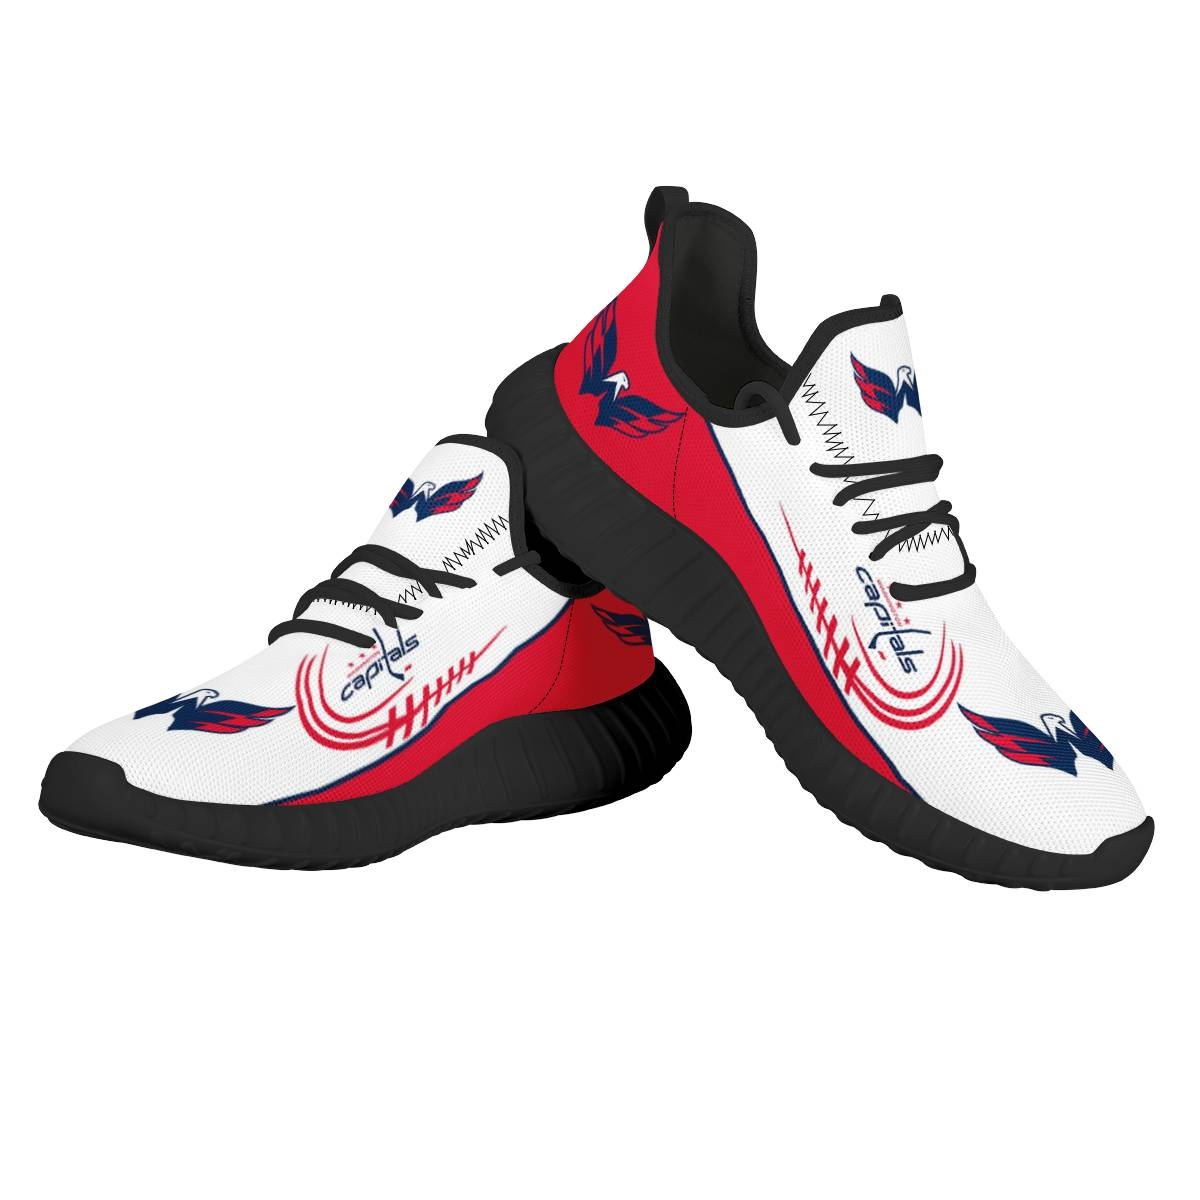 Men's NHL Washington Capitals Mesh Knit Sneakers/Shoes 001